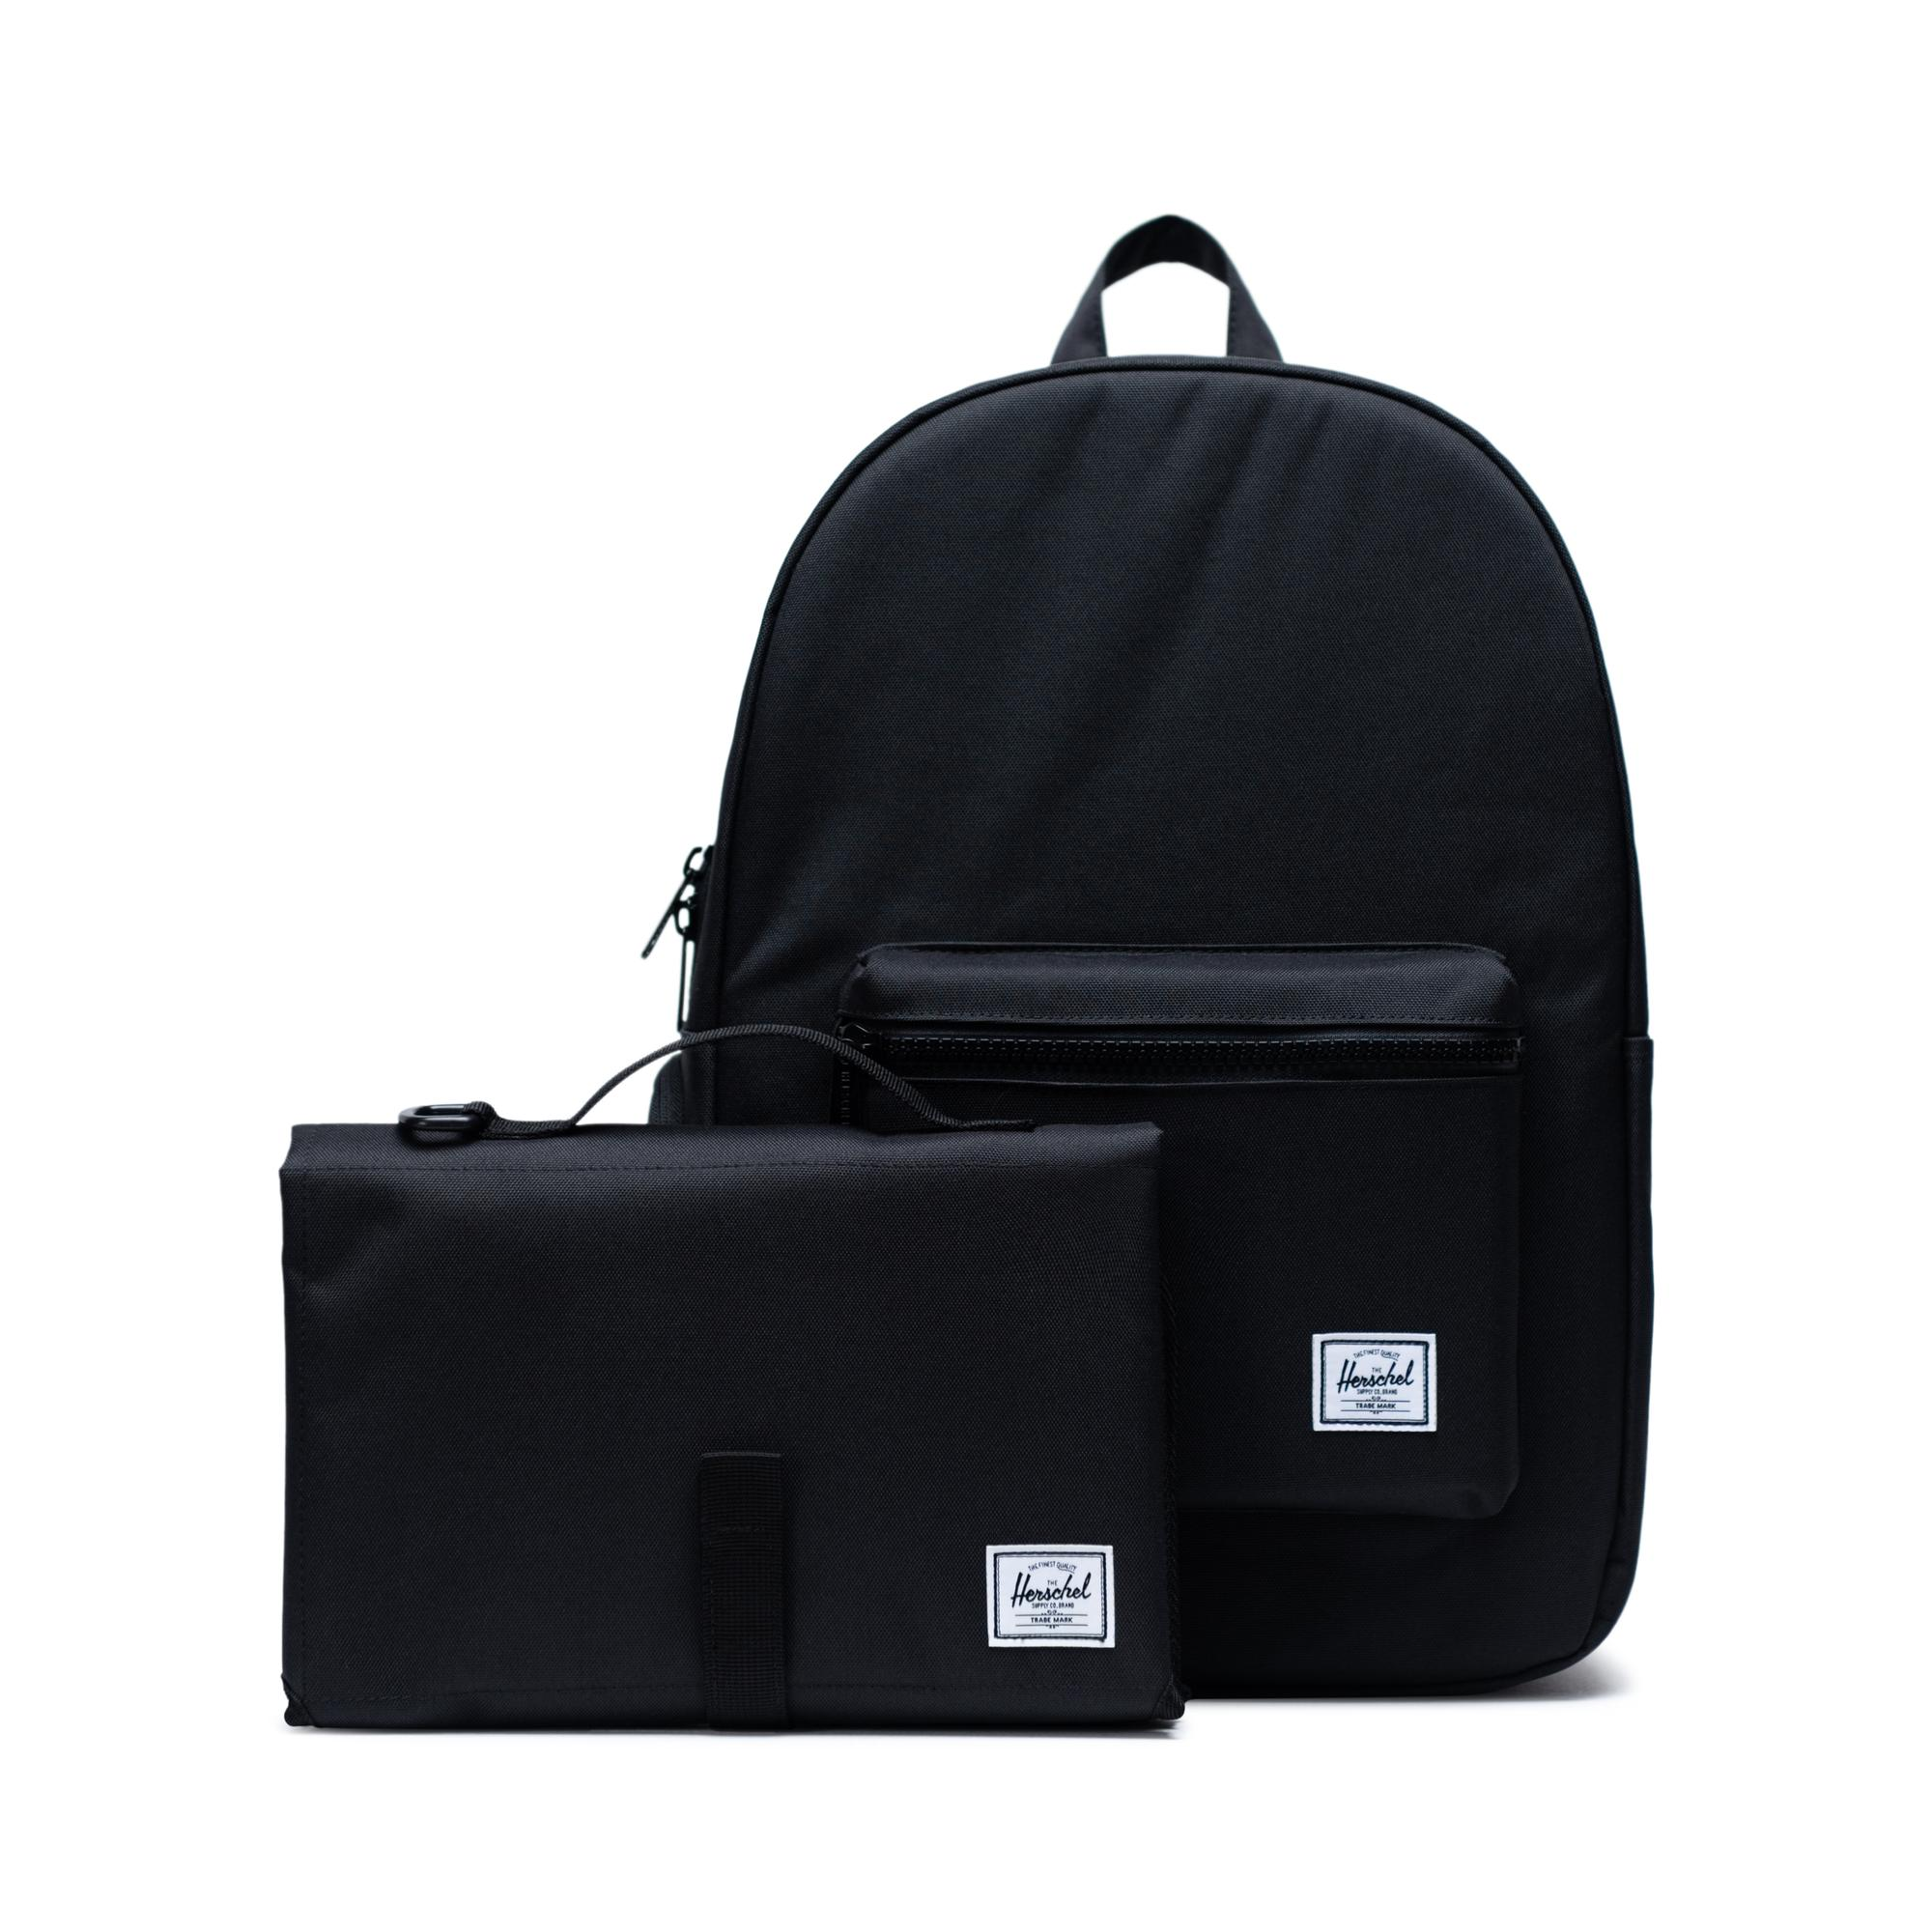 Settlement Backpack Sprout  19c260bffe092